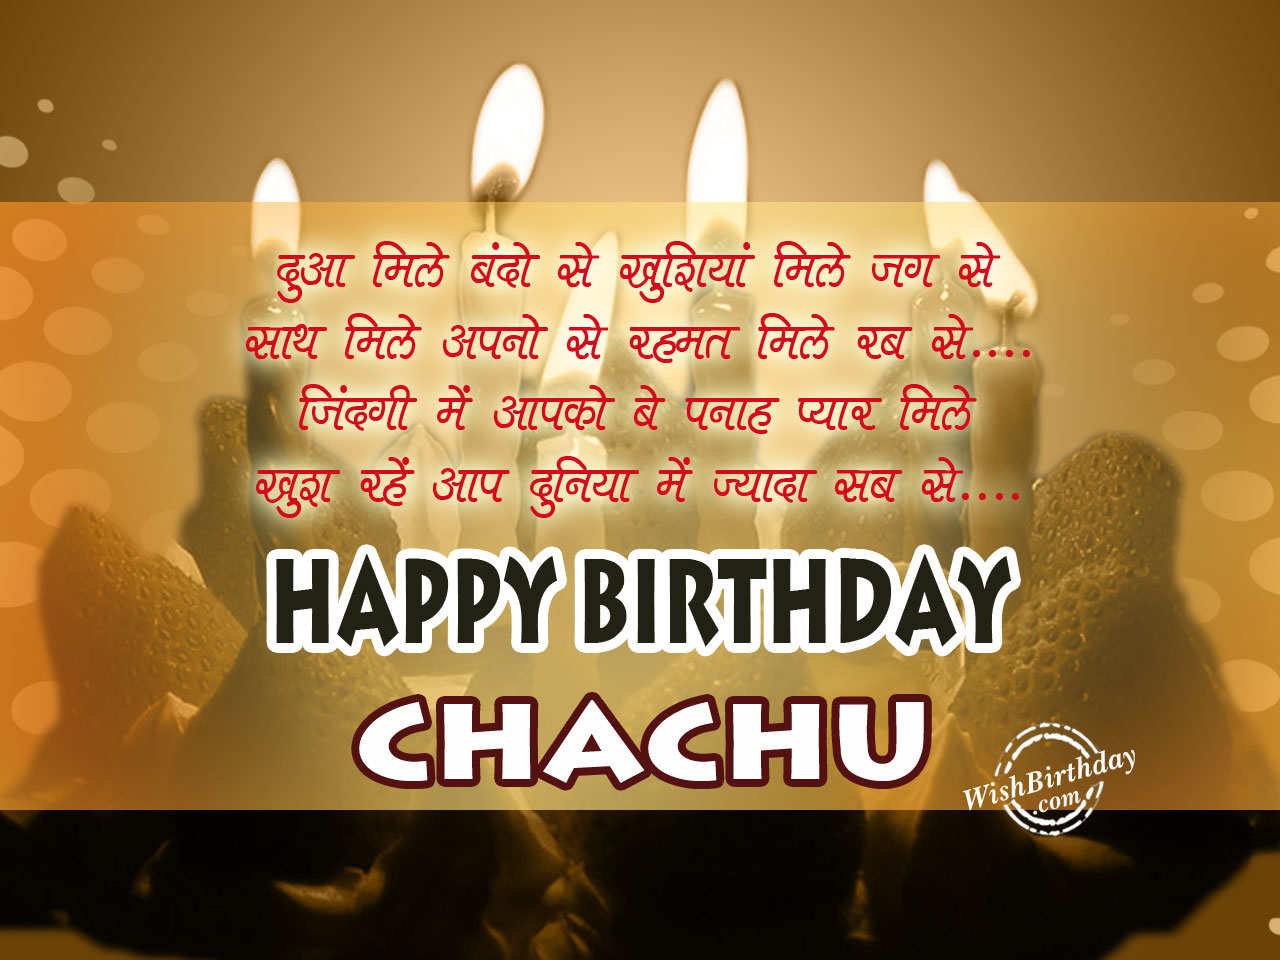 happy birthday chachu wallpaper ; a8e1ca3e7bbfc580b60d84838052c234